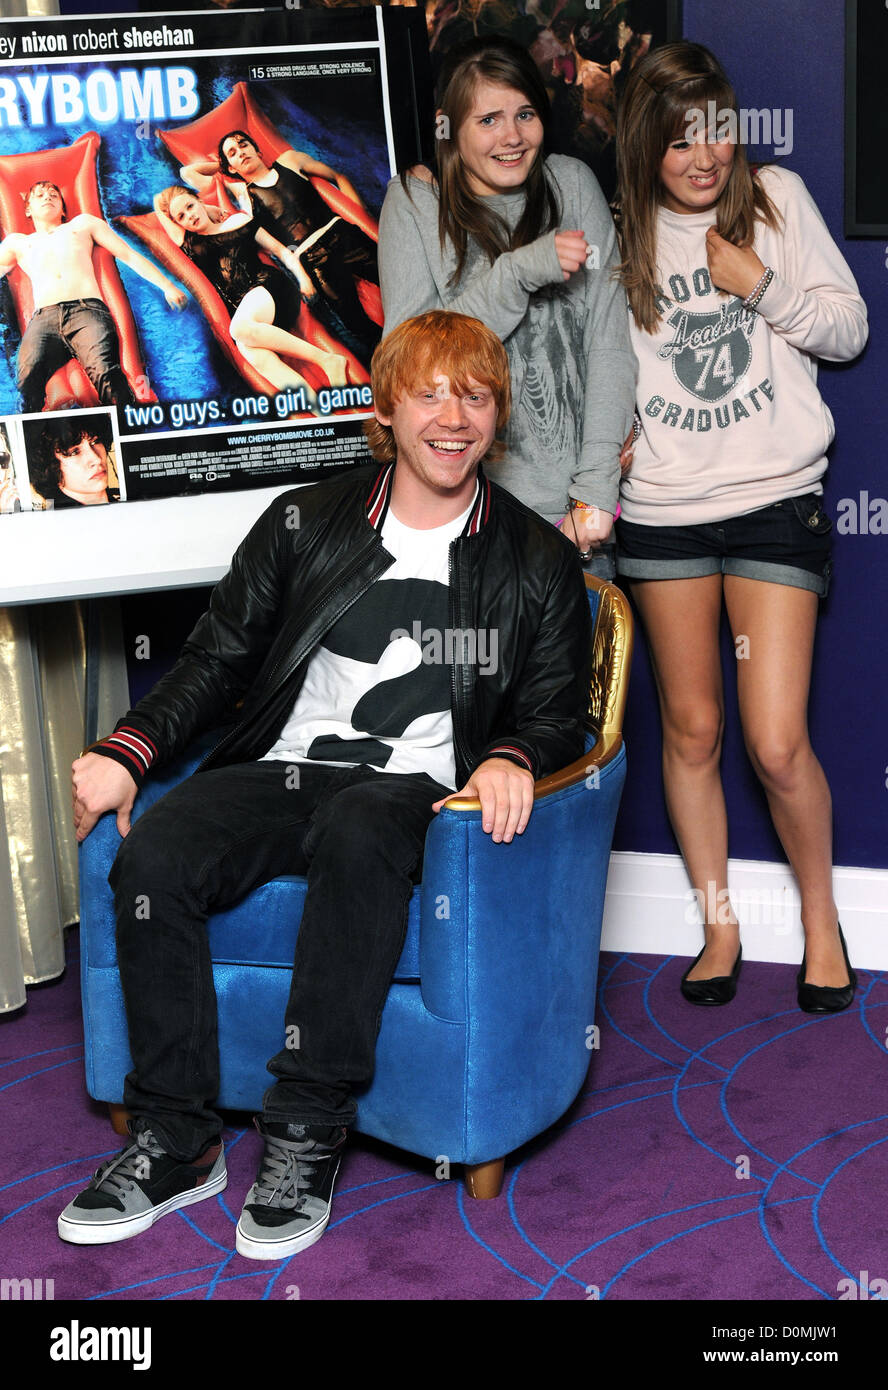 Rupert grint photocall before a fan meet and greet to promote rupert grint photocall before a fan meet and greet to promote todays dvd release of cherrybomb held at the sanctum soho hotel m4hsunfo